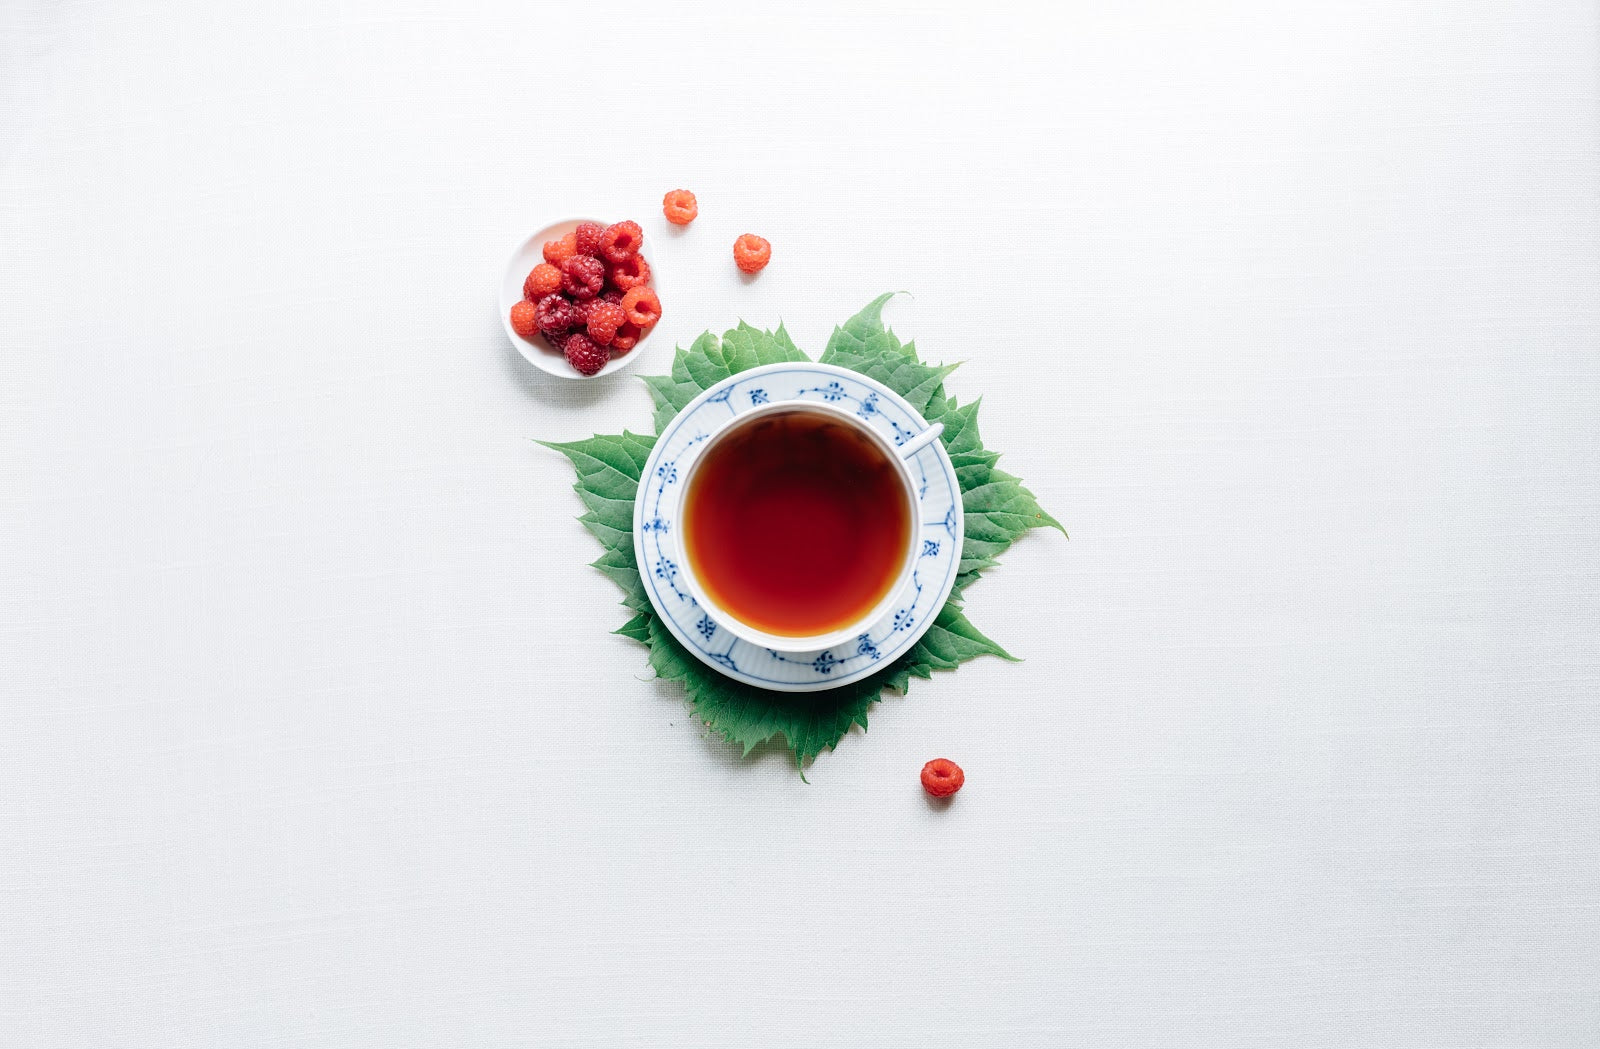 Menopause supplements: red raspberry leaf